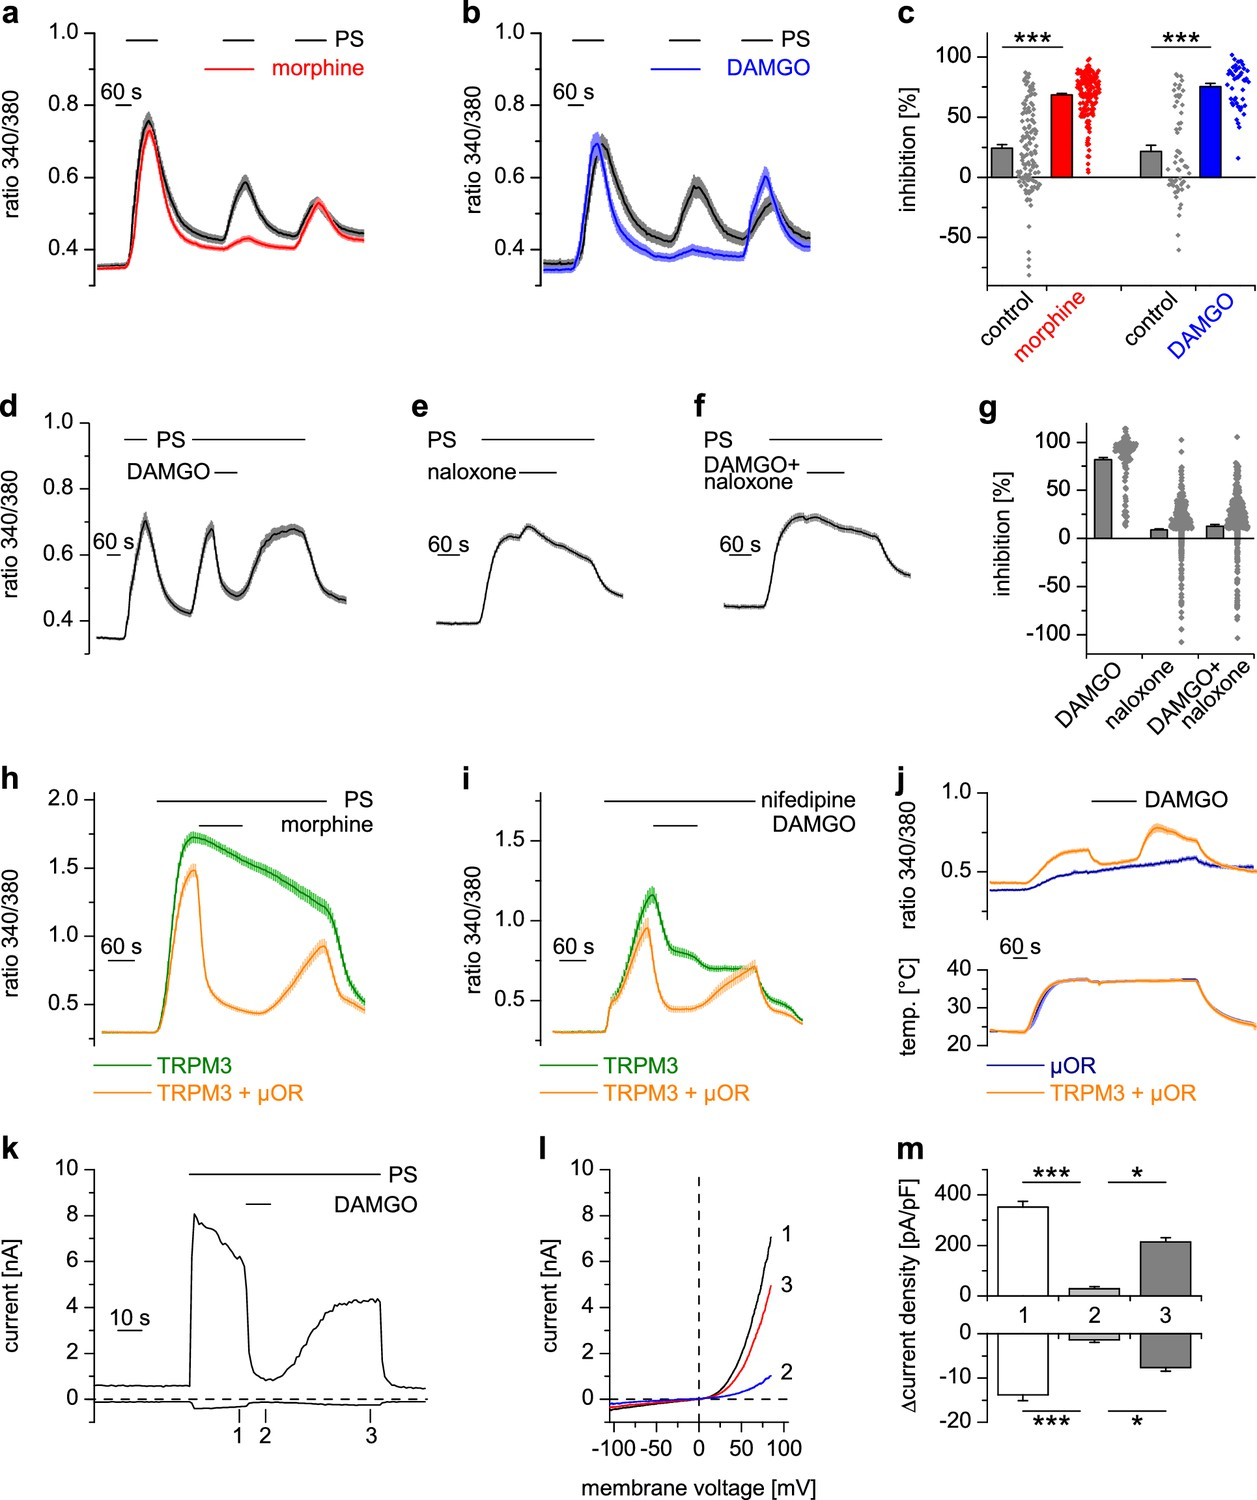 Anti Nociceptive Action Of Peripheral Mu Opioid Receptors By G Beta Op Amp Voltage Follower Saturation Electrical Engineering Stack Activated Ors Inhibit Trpm3 Induced Ca2 Signals In Somatosensory Neurons And An Overexpression System